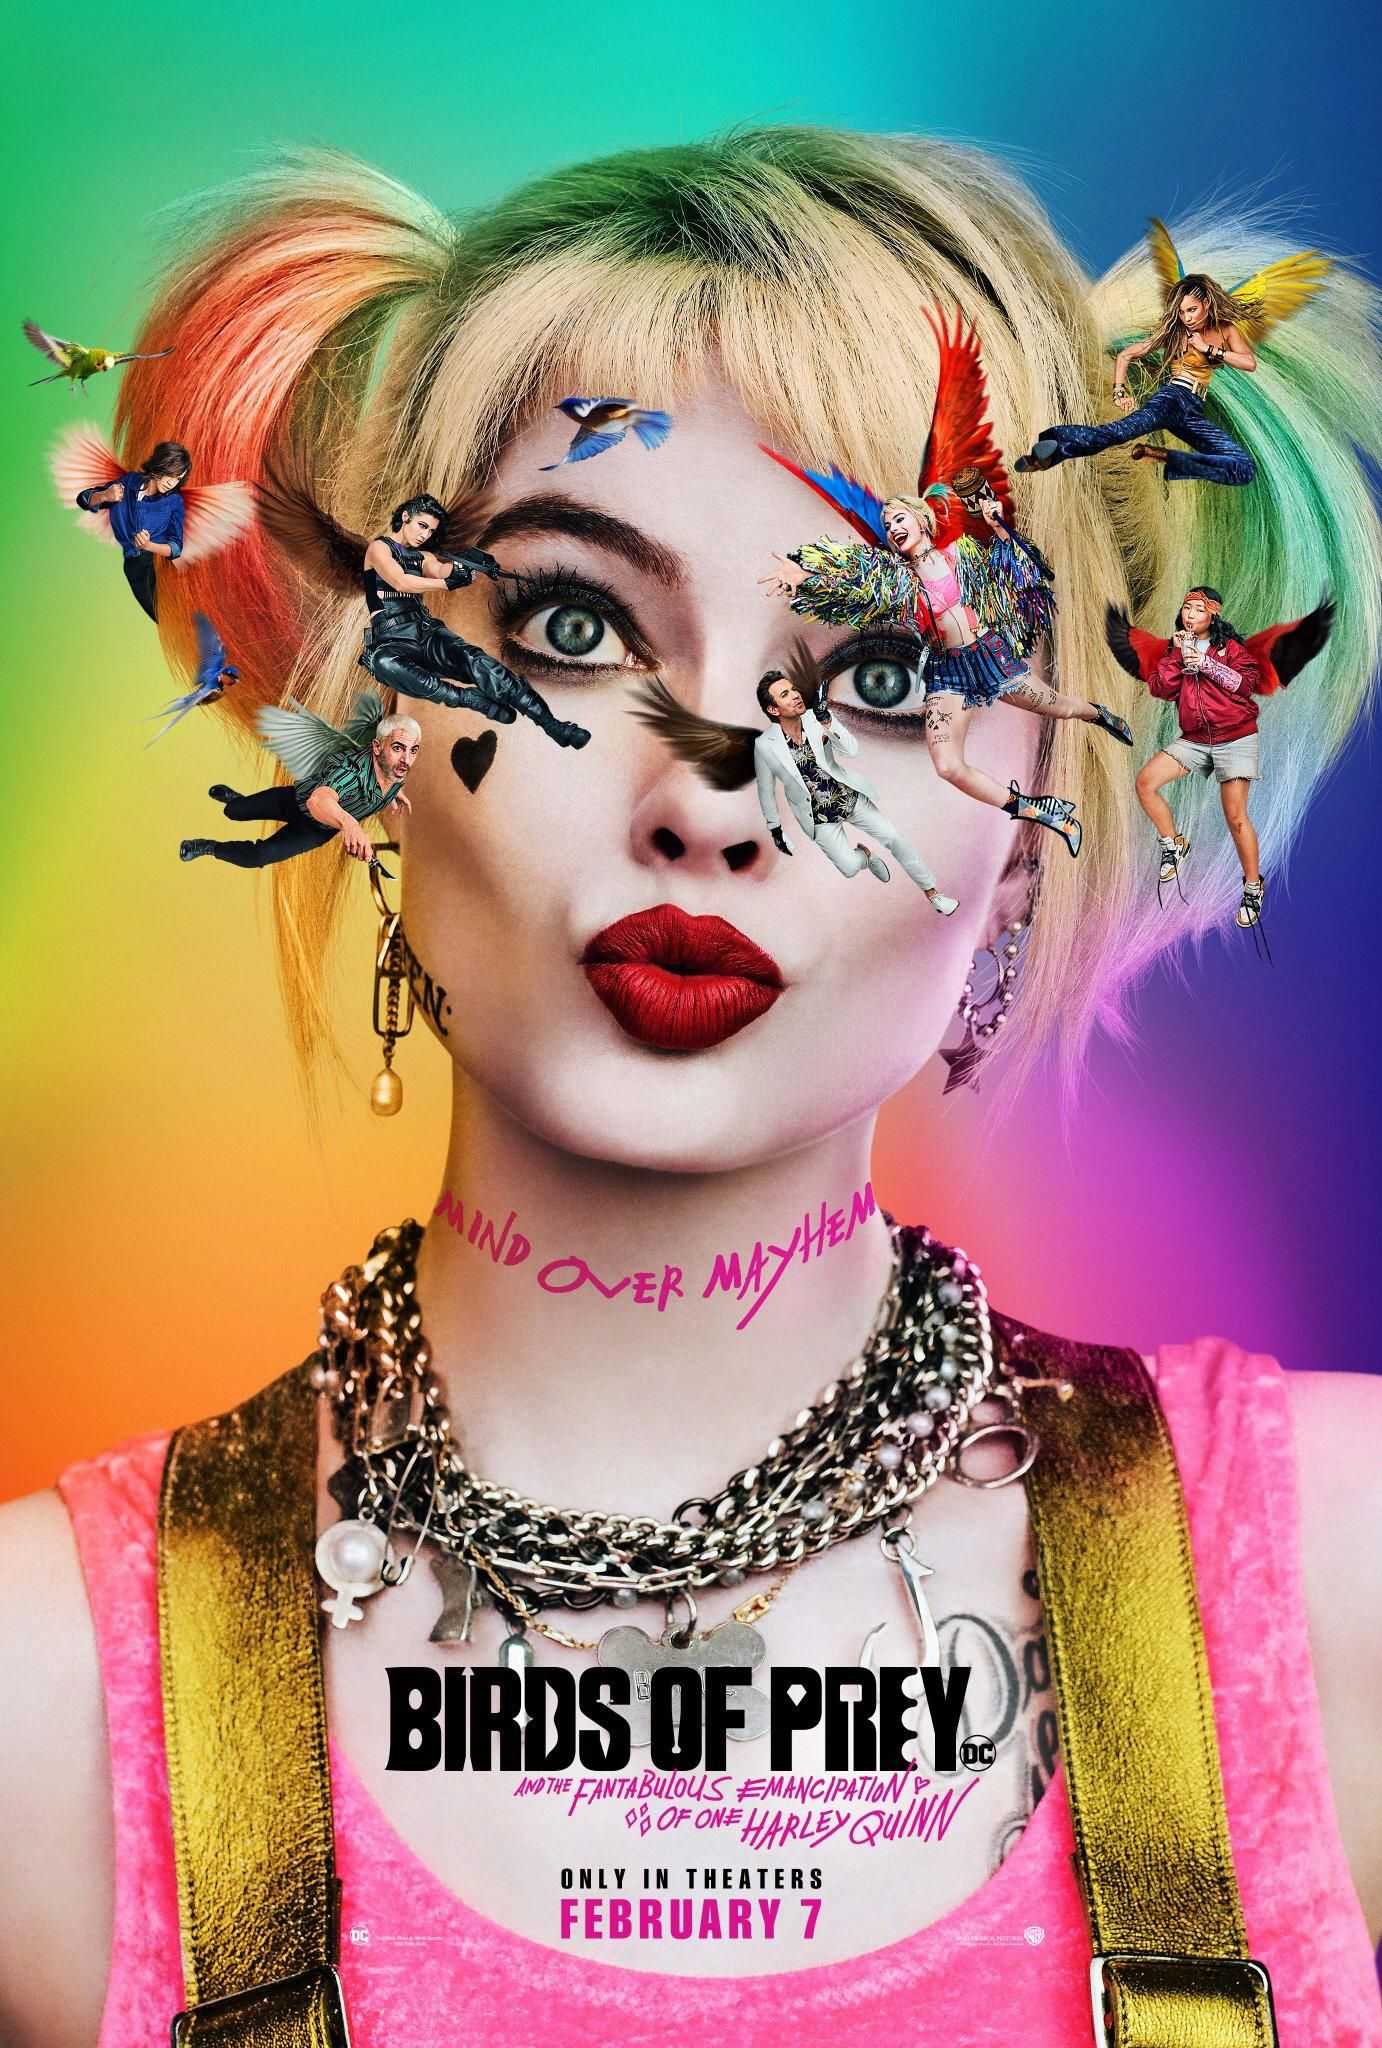 Harley Quinn movie Birds of Prey gets a very unique first poster